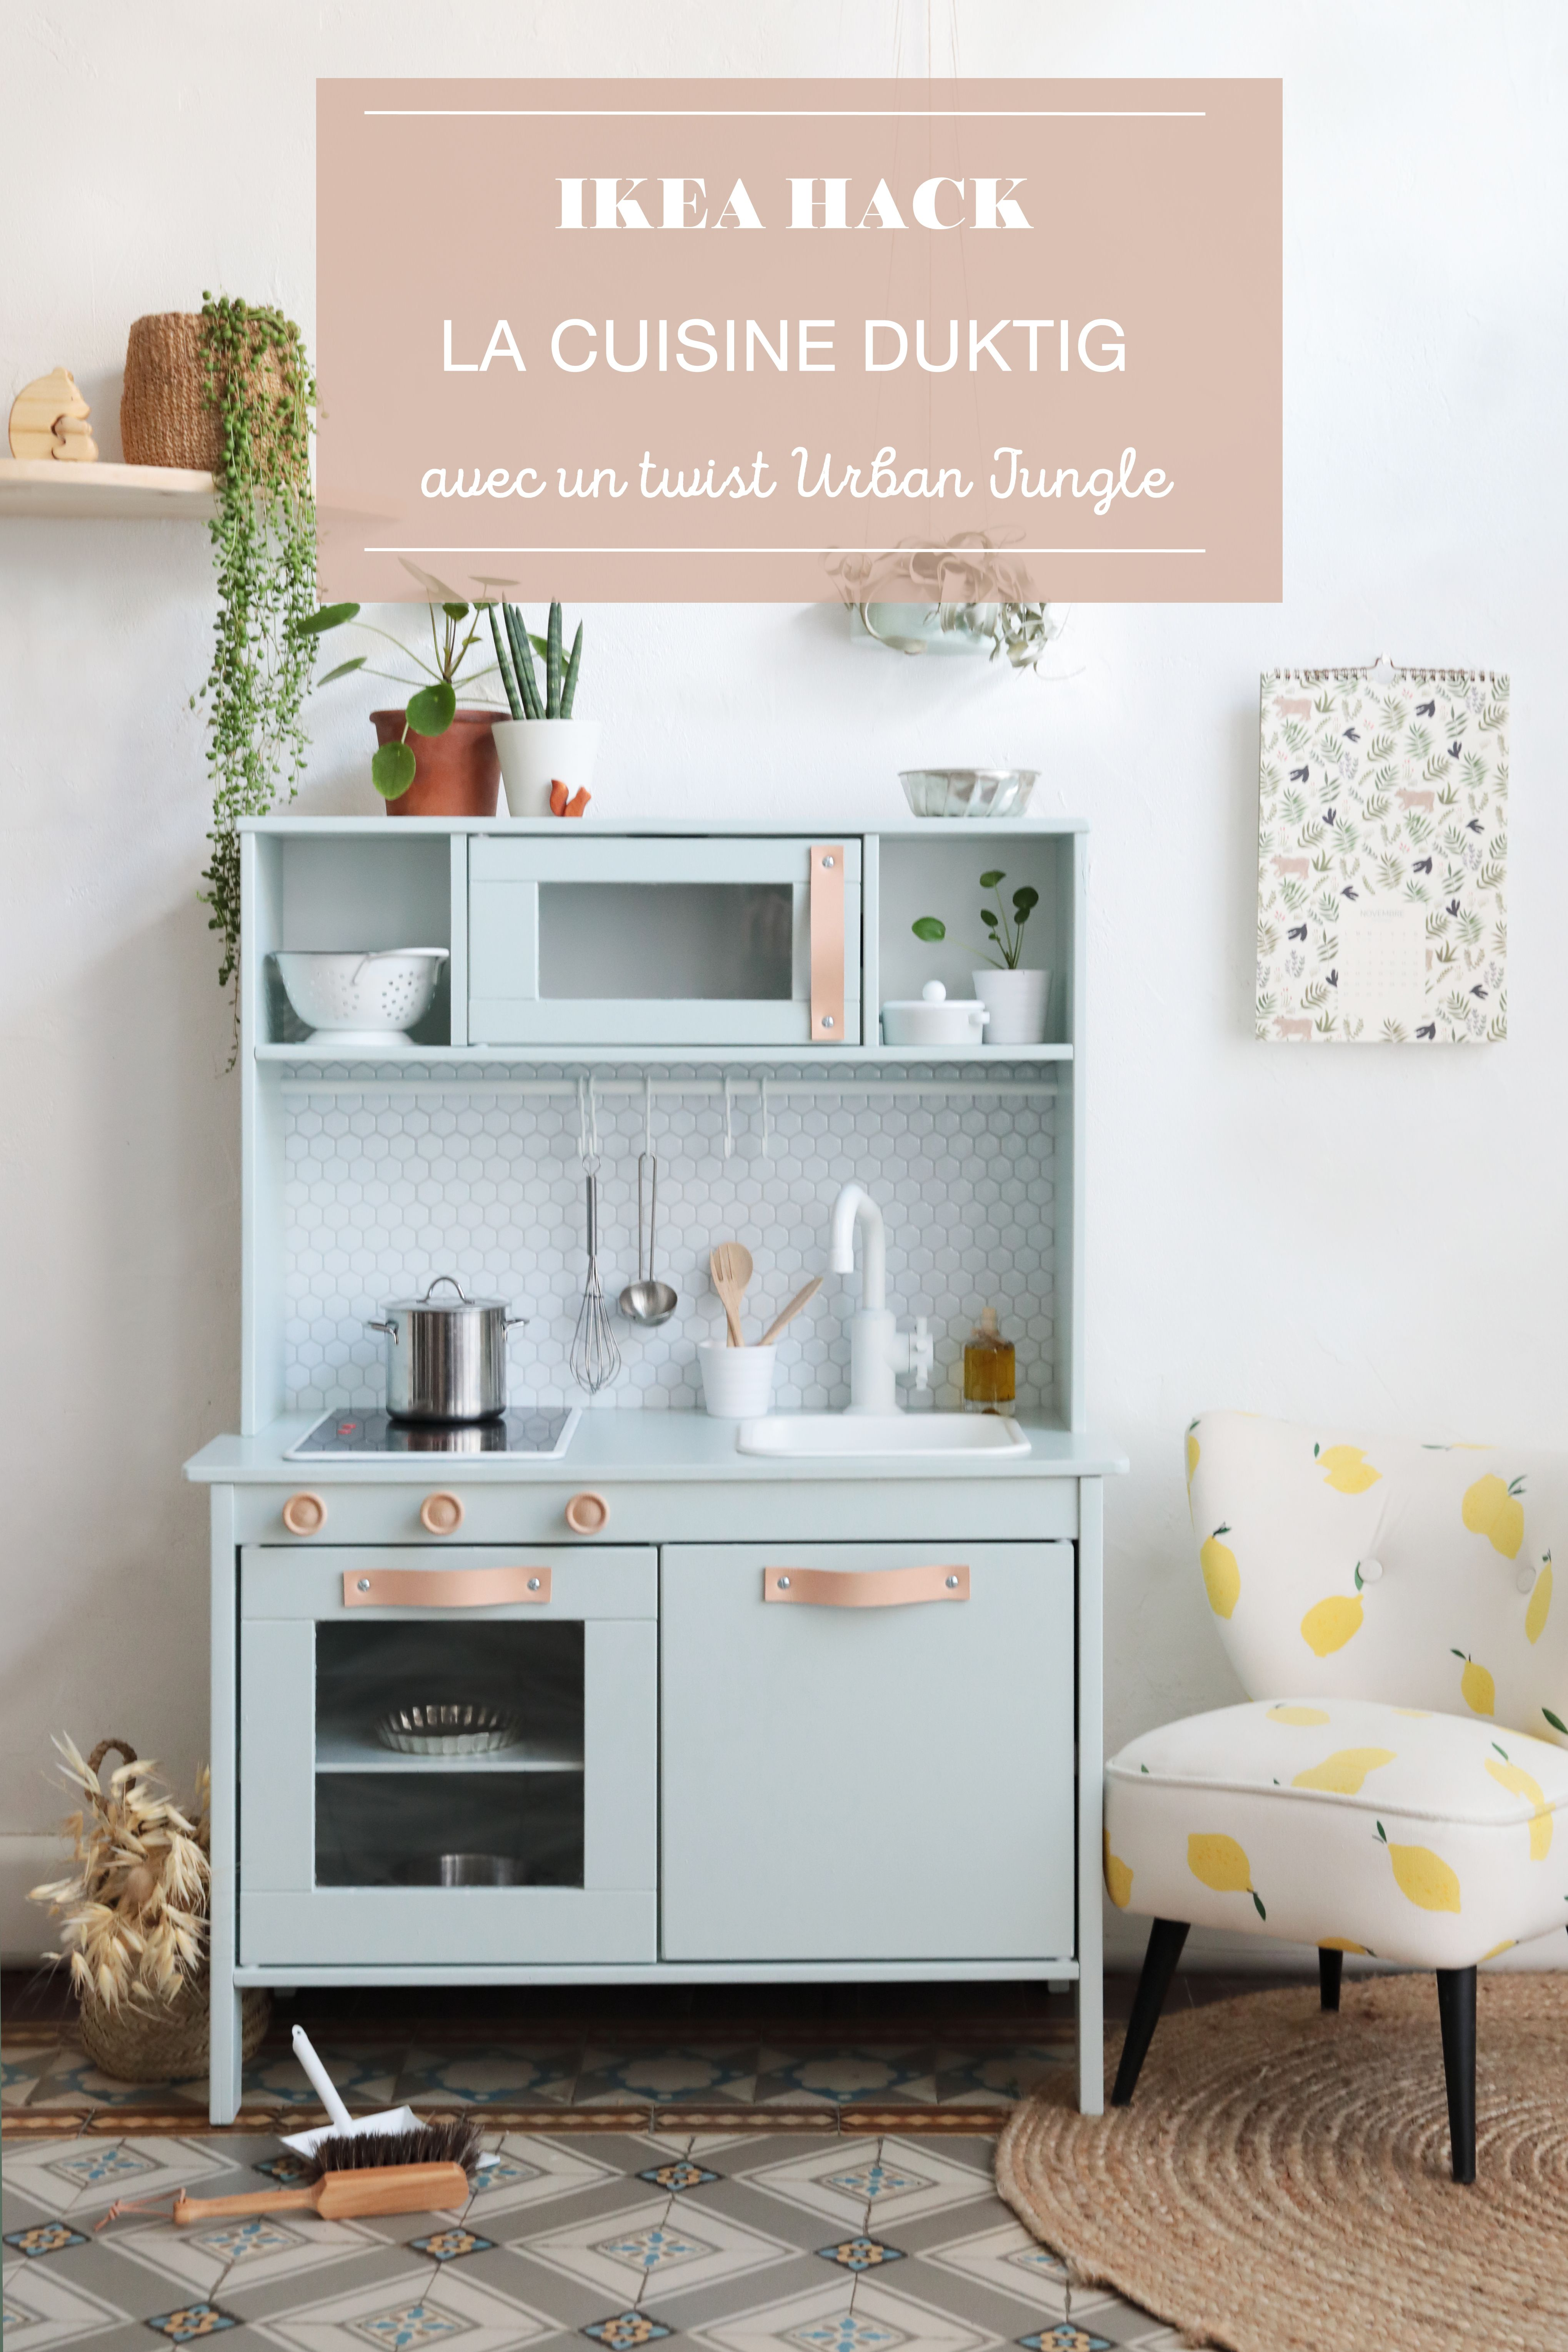 ikea hack comment relooker la cuisine pour enfant duktig pinterest dulux valentine. Black Bedroom Furniture Sets. Home Design Ideas